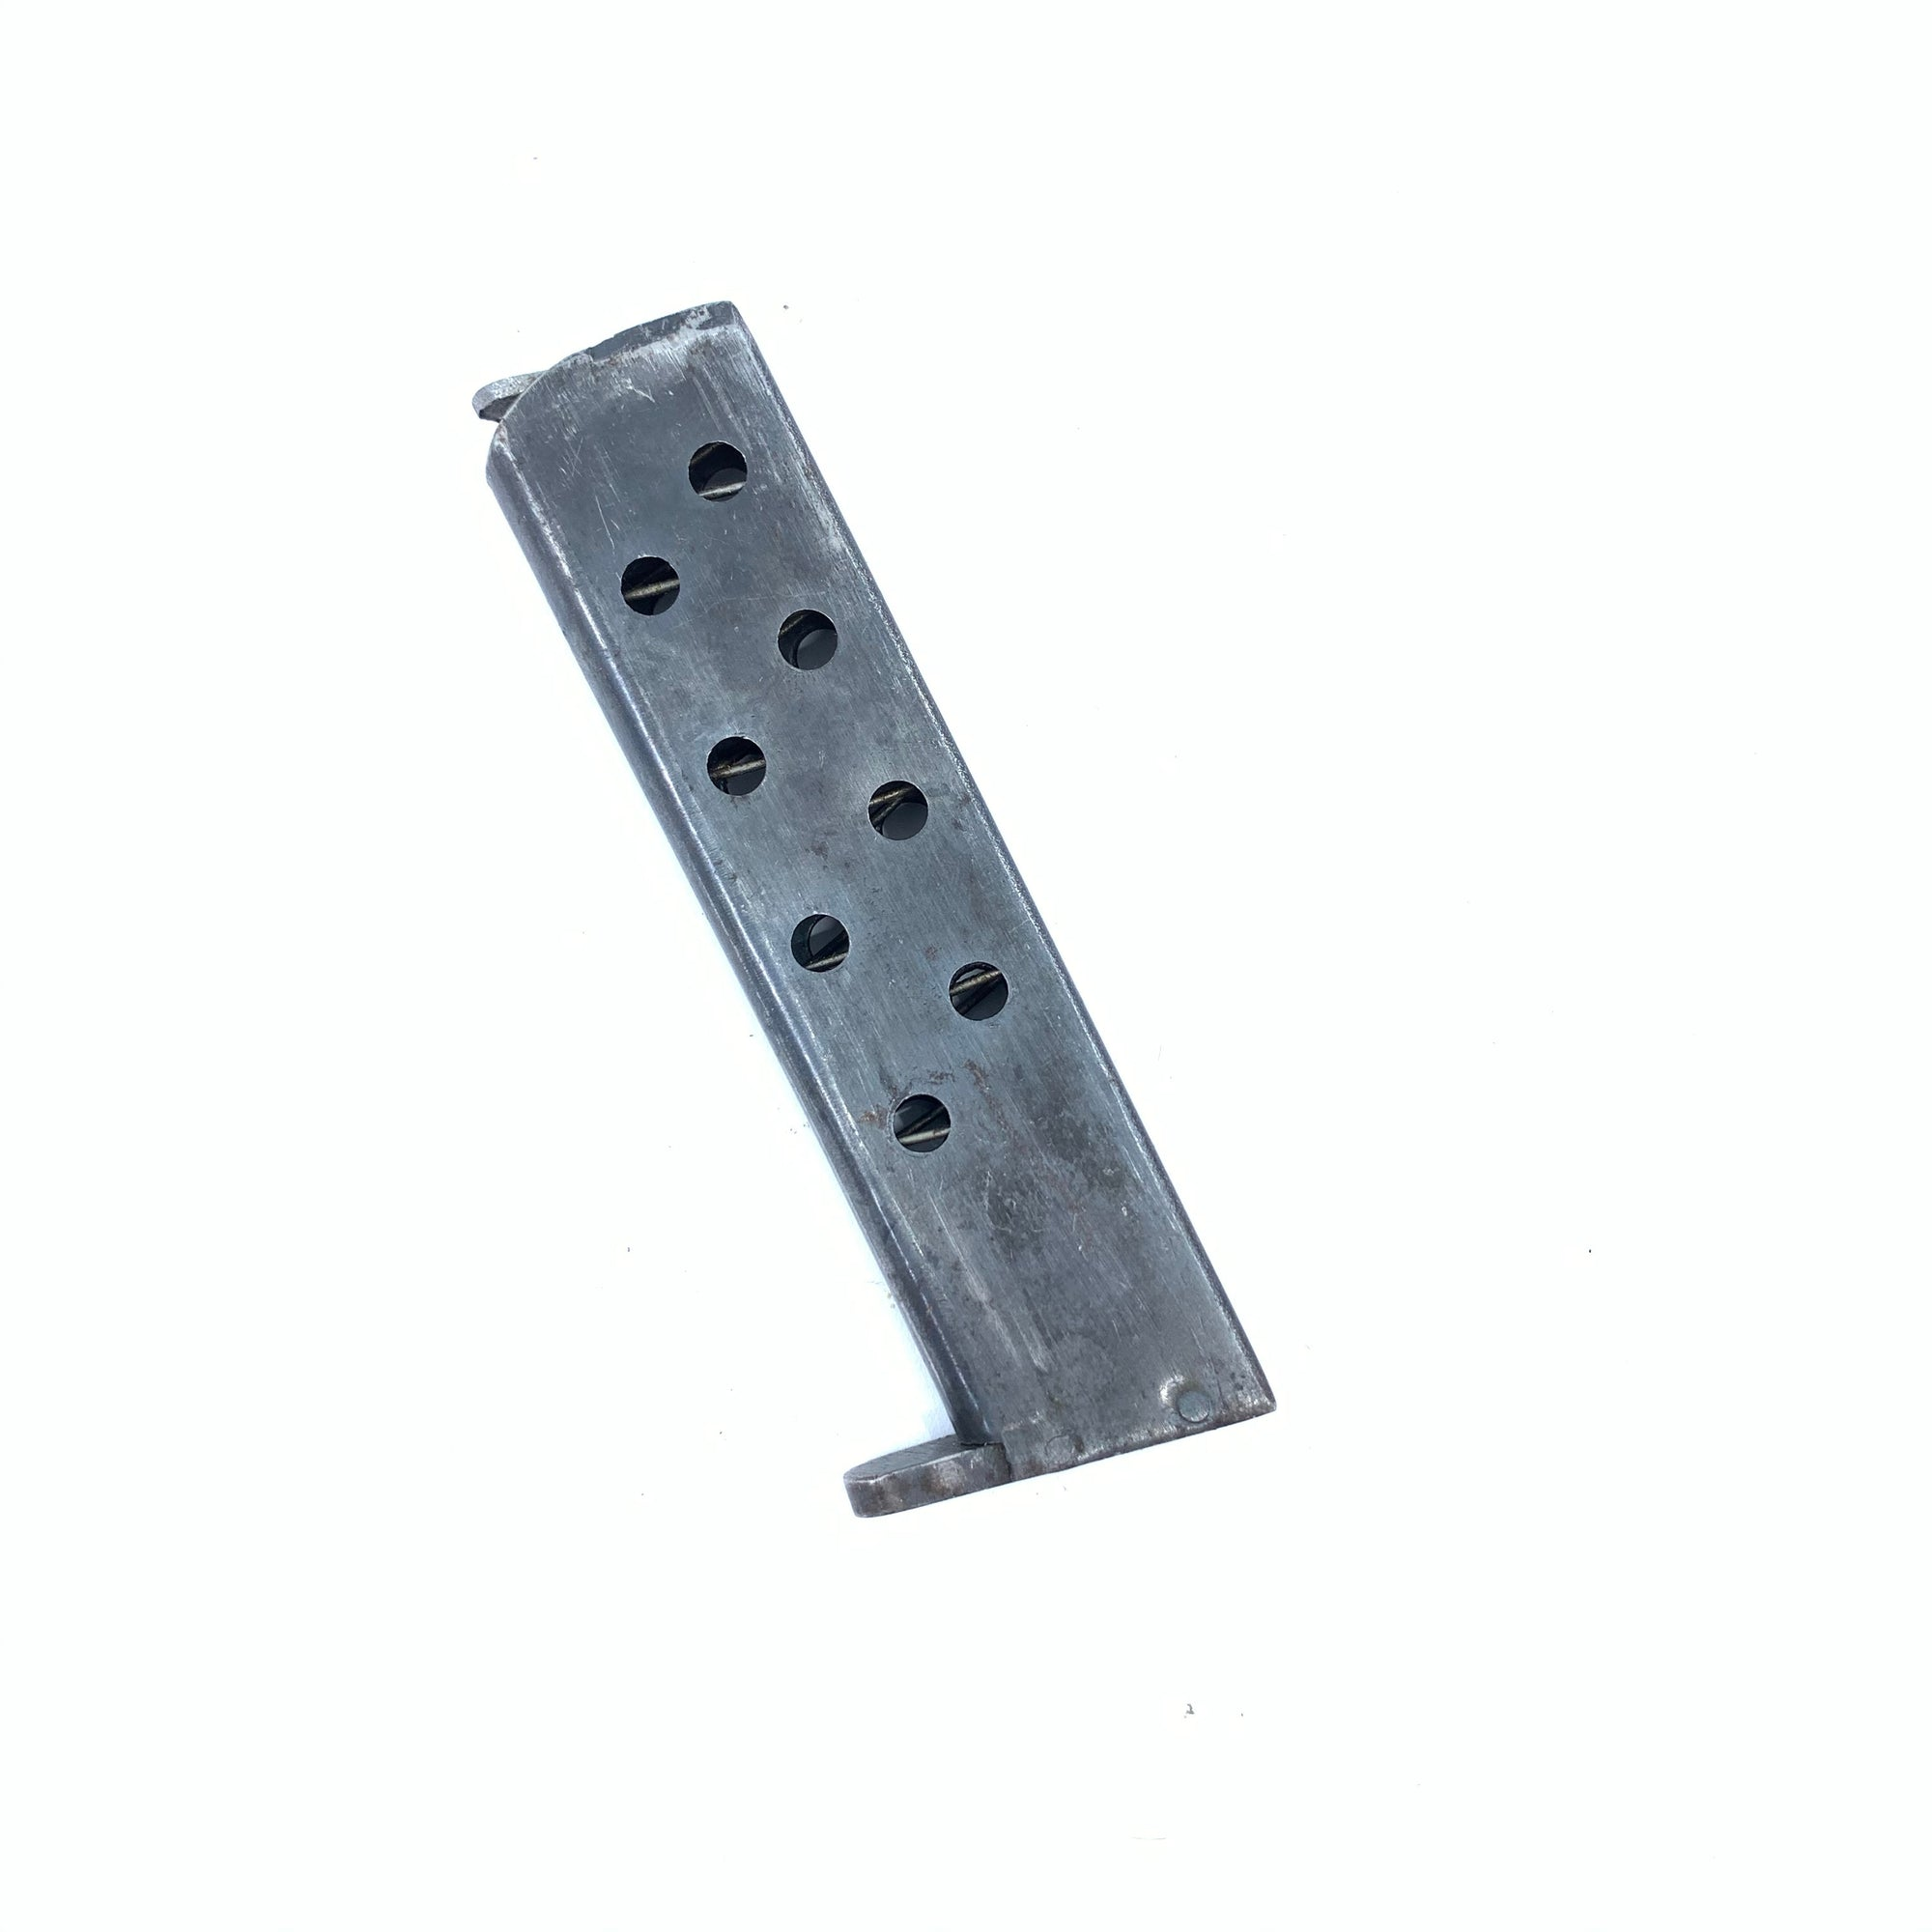 Ruby Spanish 7.65mm Pistol Magazine